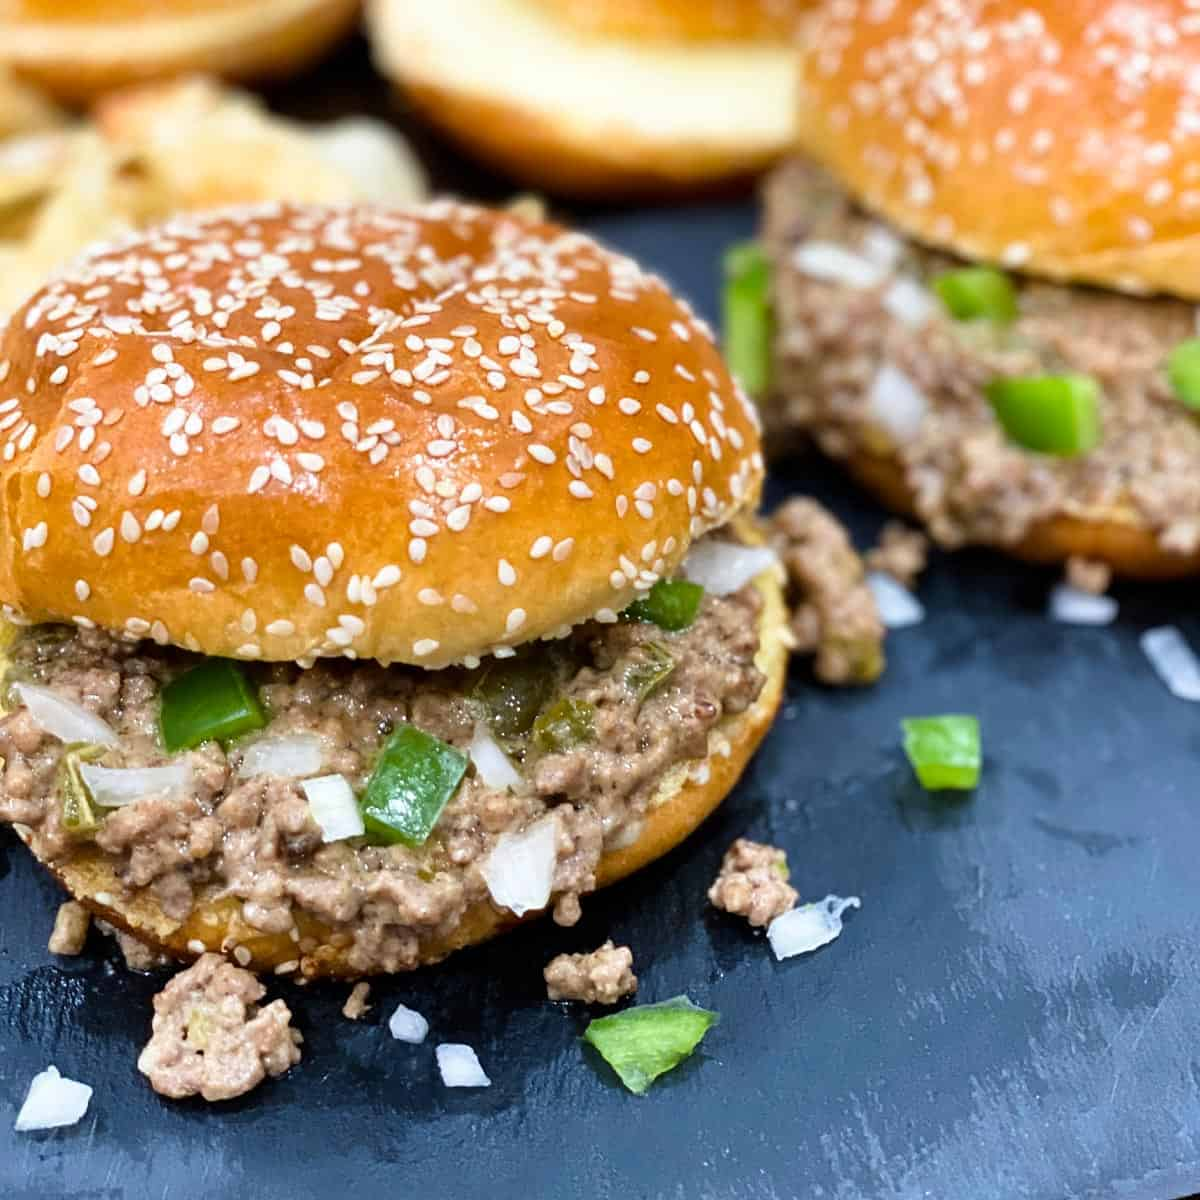 Close up of two philly cheesesteak sloppy joes with green bell peppers and onions on a black surface